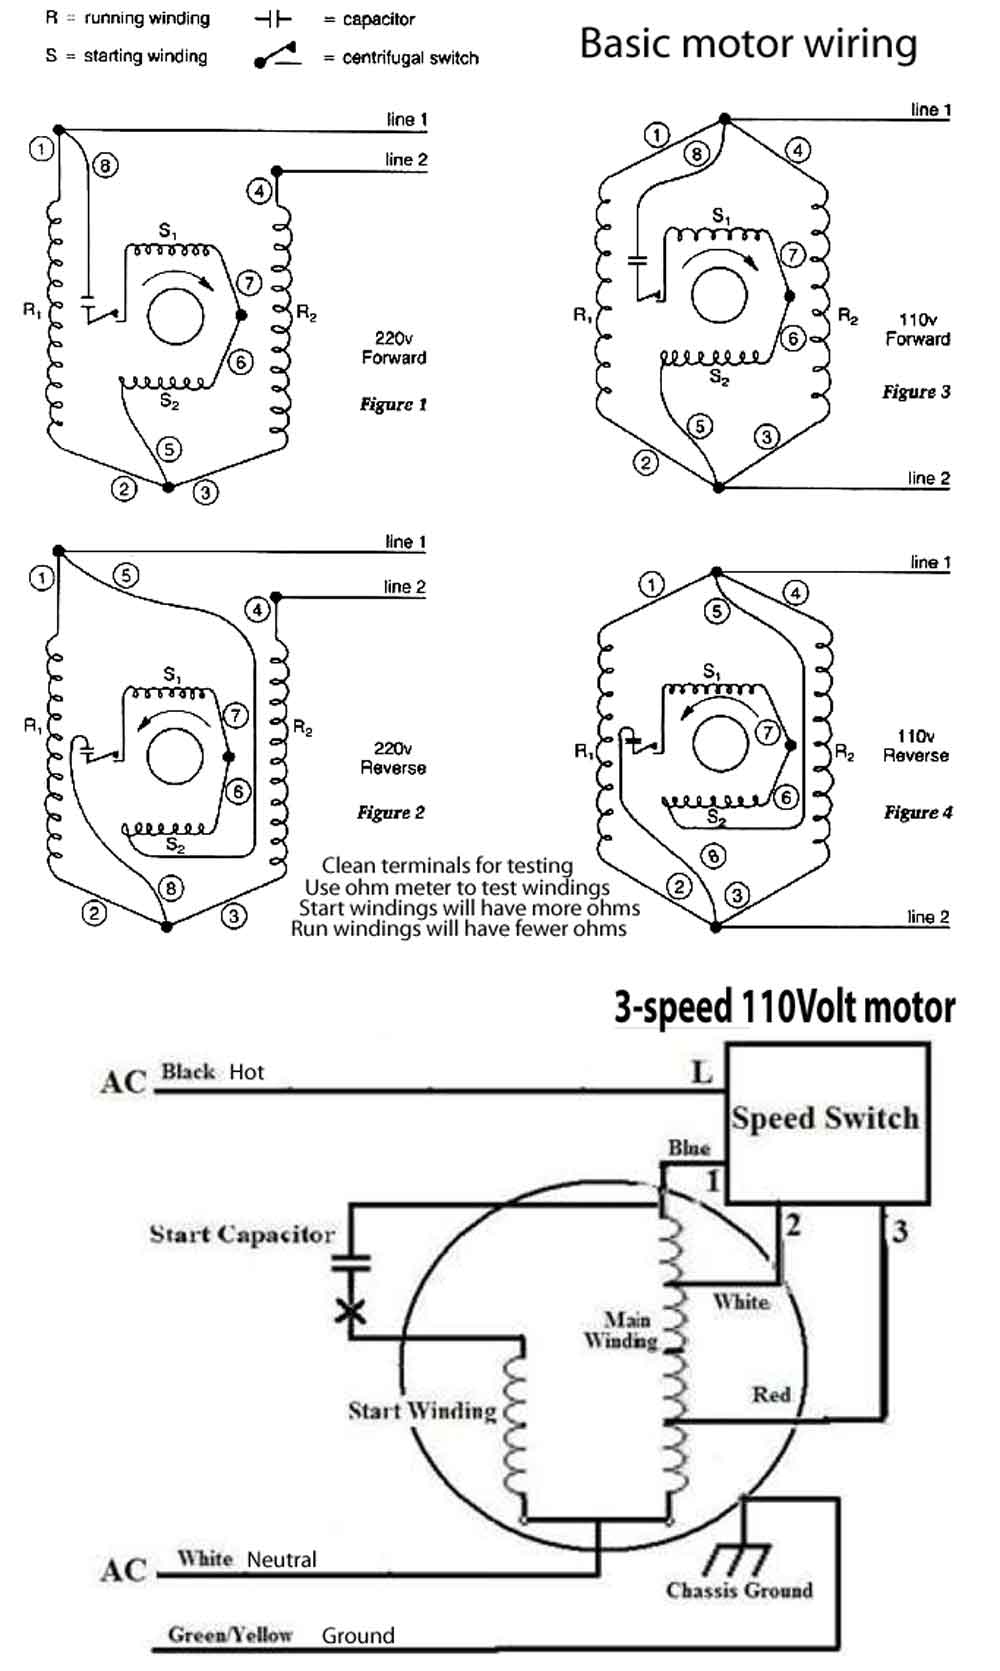 Motor wiring 500 color code for residential wire how to match wire size and 110 Power Cord Diagram at bakdesigns.co